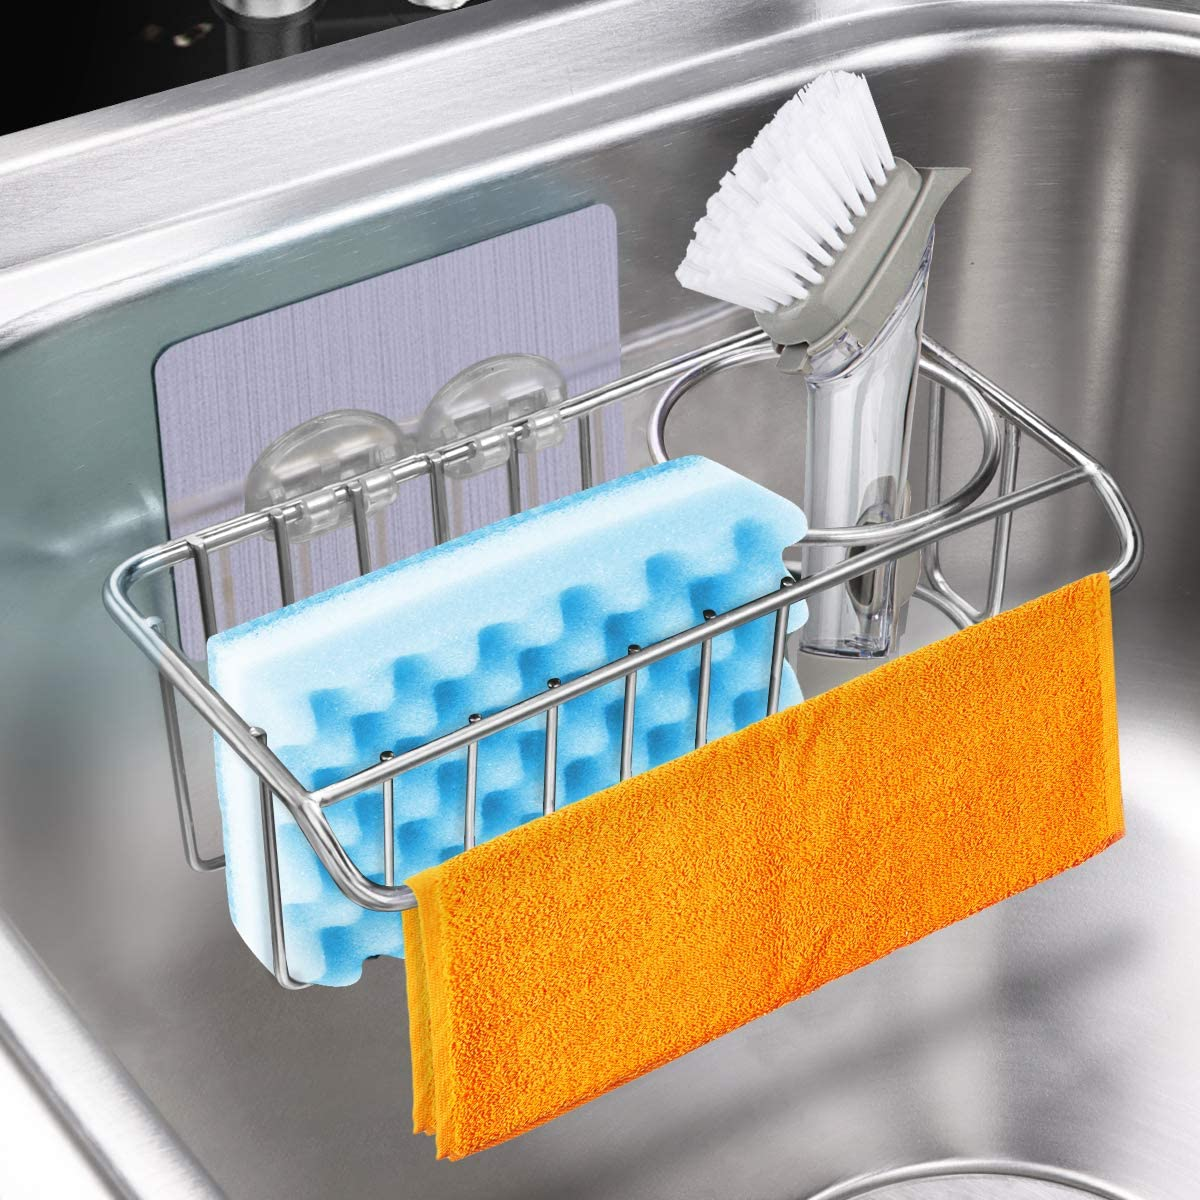 Aiduy 3-in-1 Adhesive Kitchen Sink Caddy Opening large release sale H Holder Sponge + Cheap mail order shopping Brush